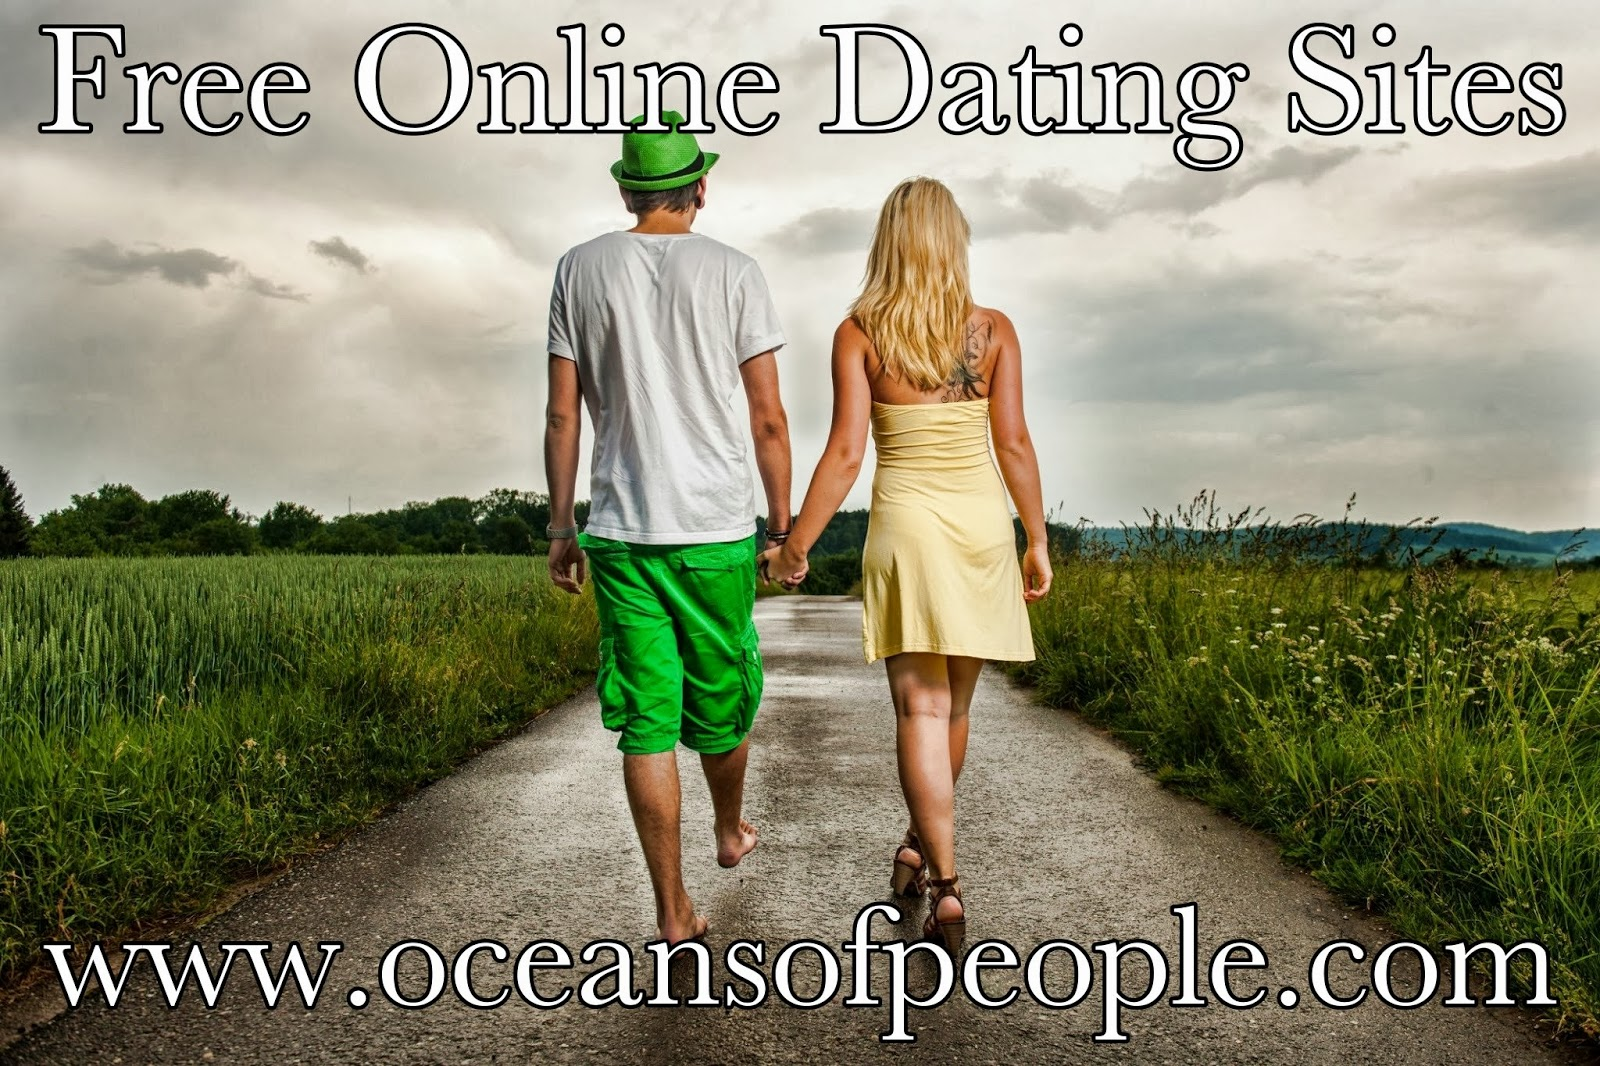 Free online dating site that works